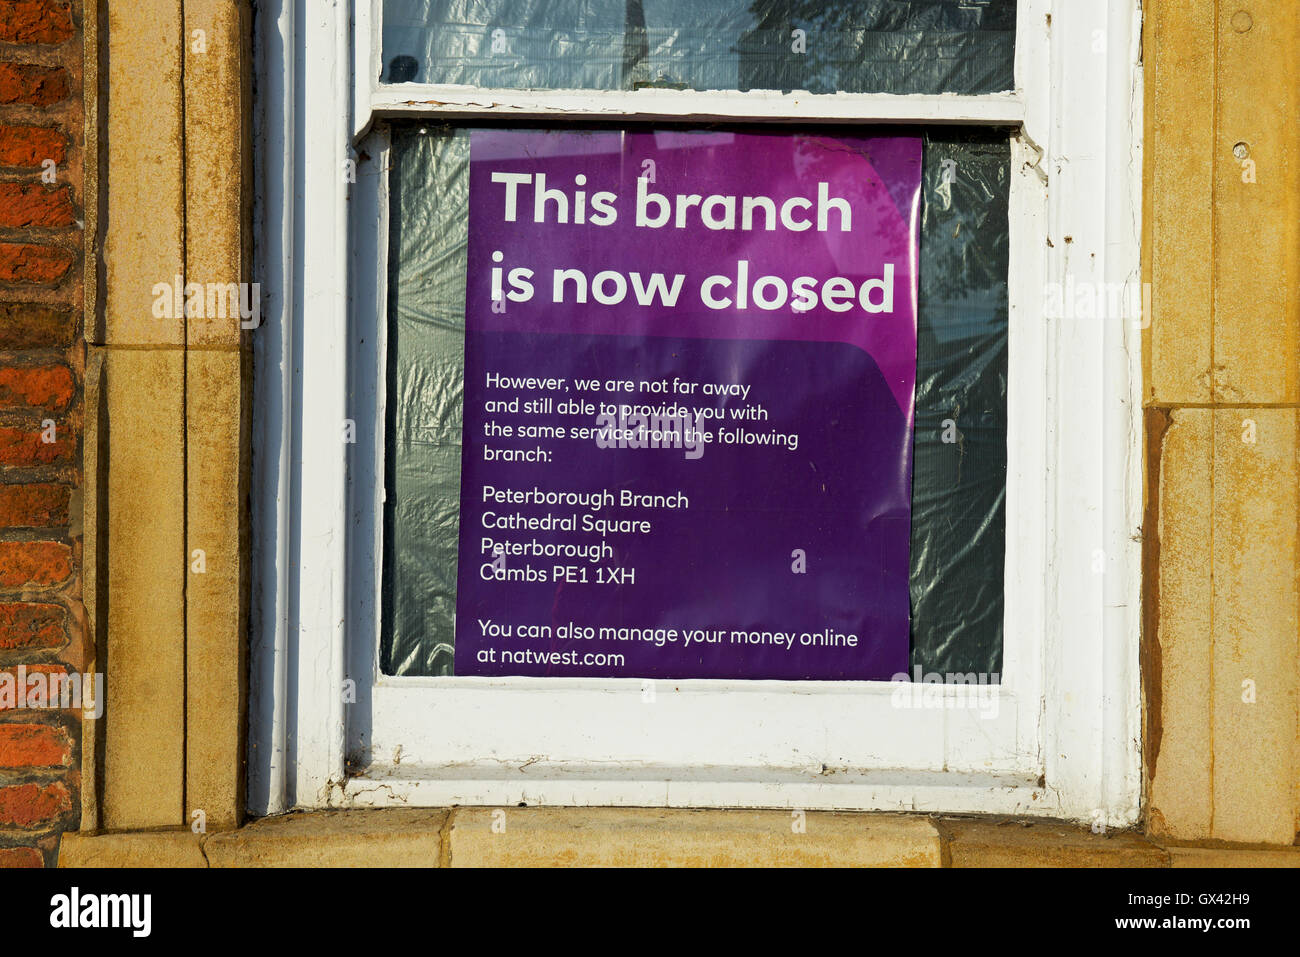 Sign in window notifying customers that this branch of the Natwest Bank is now closed, England UK - Stock Image